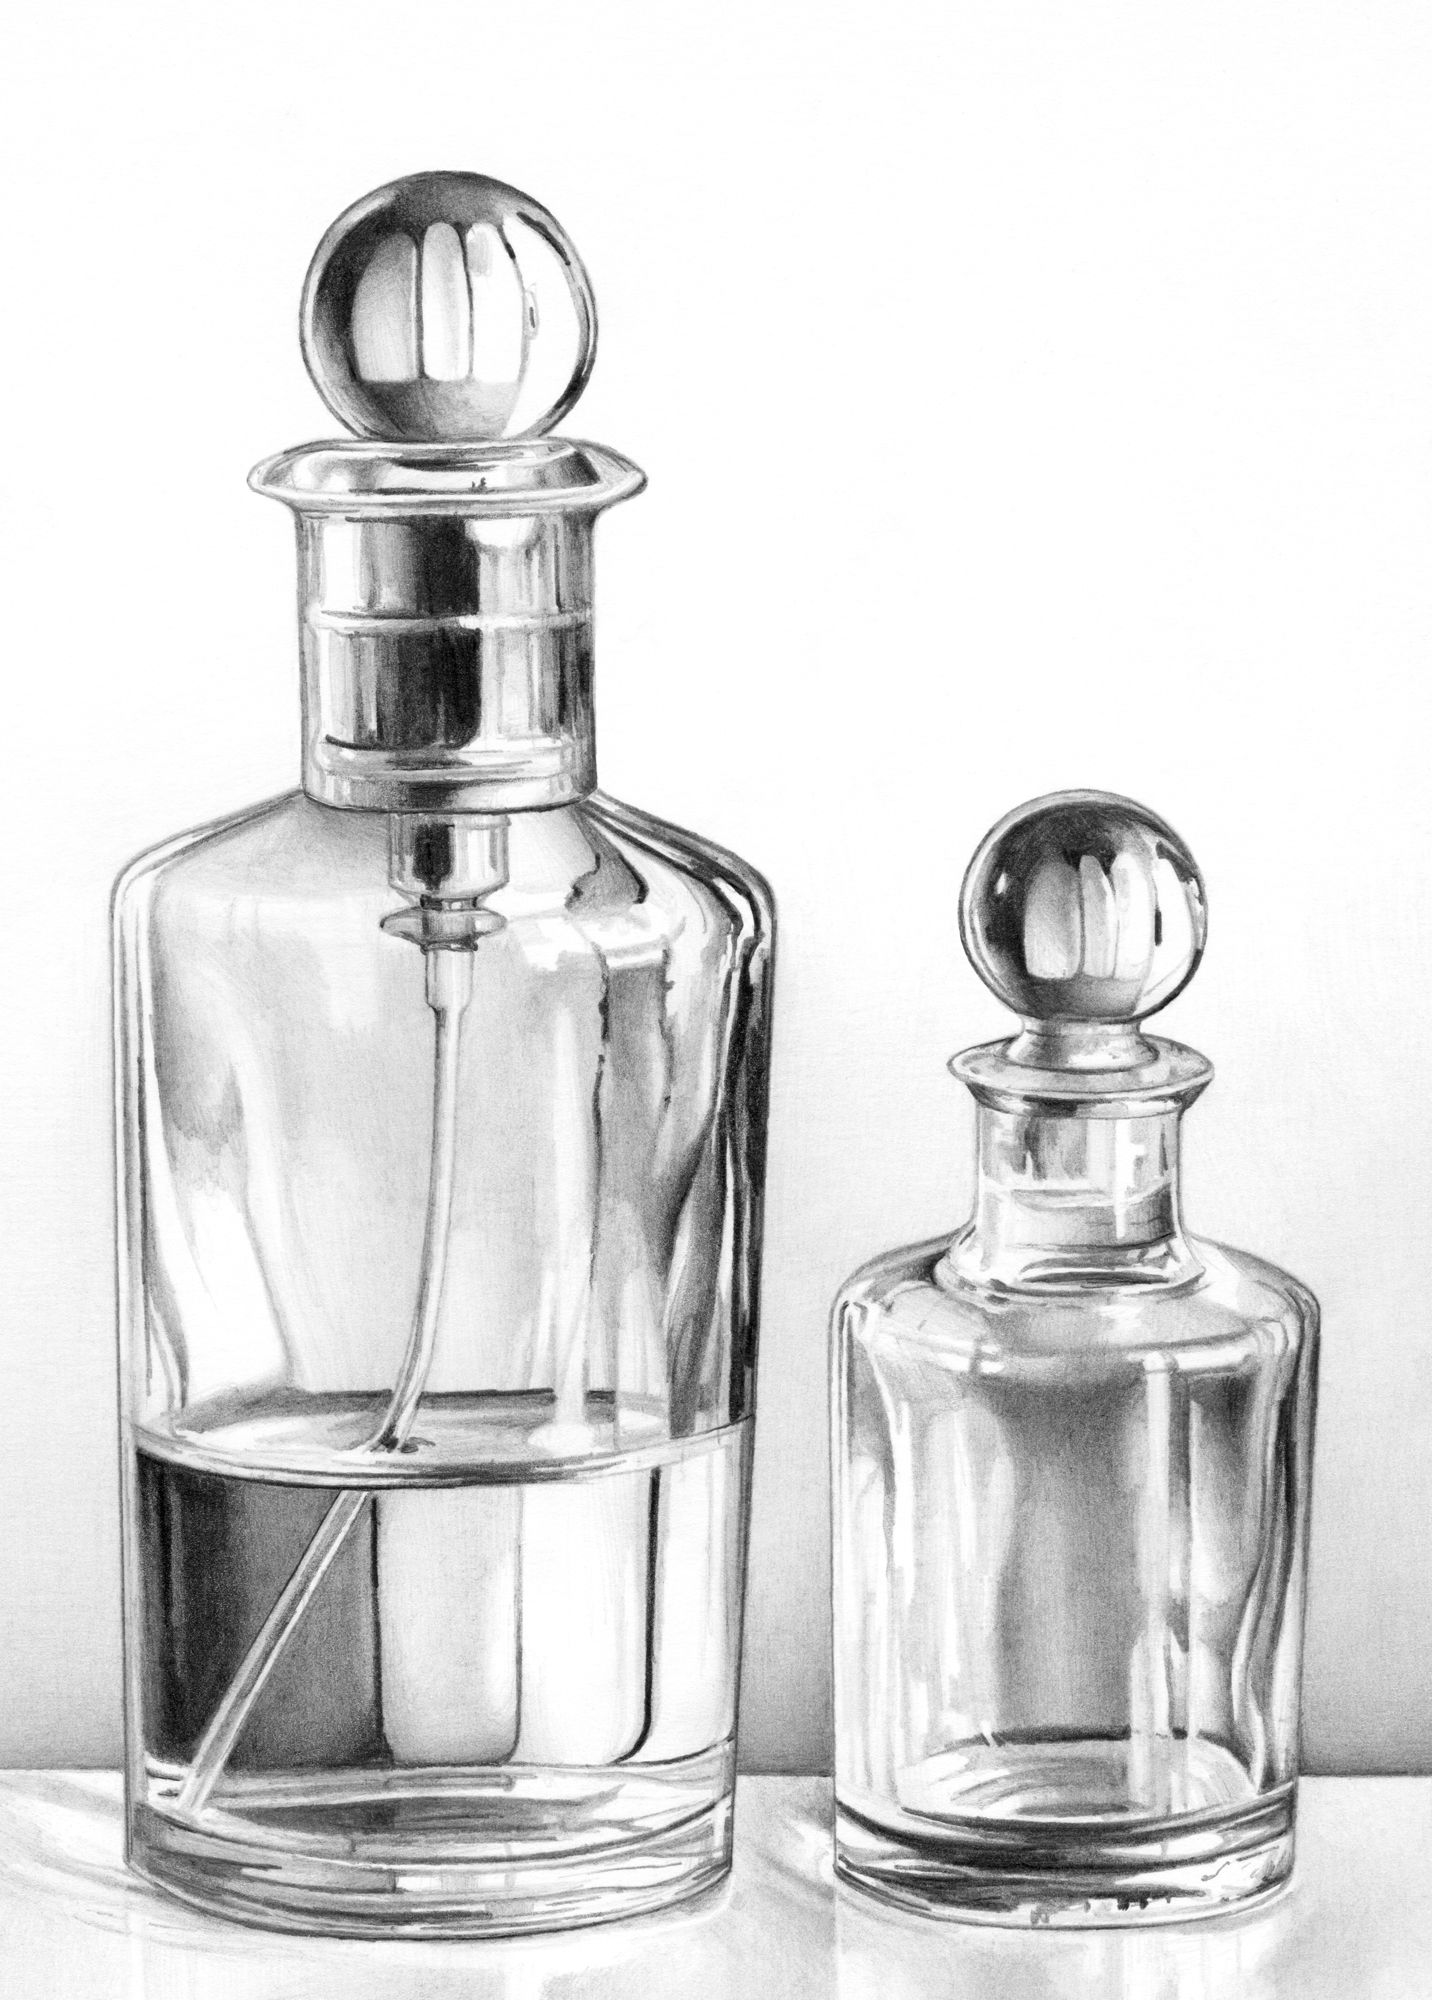 Glass perfume bottles cath riley debut art